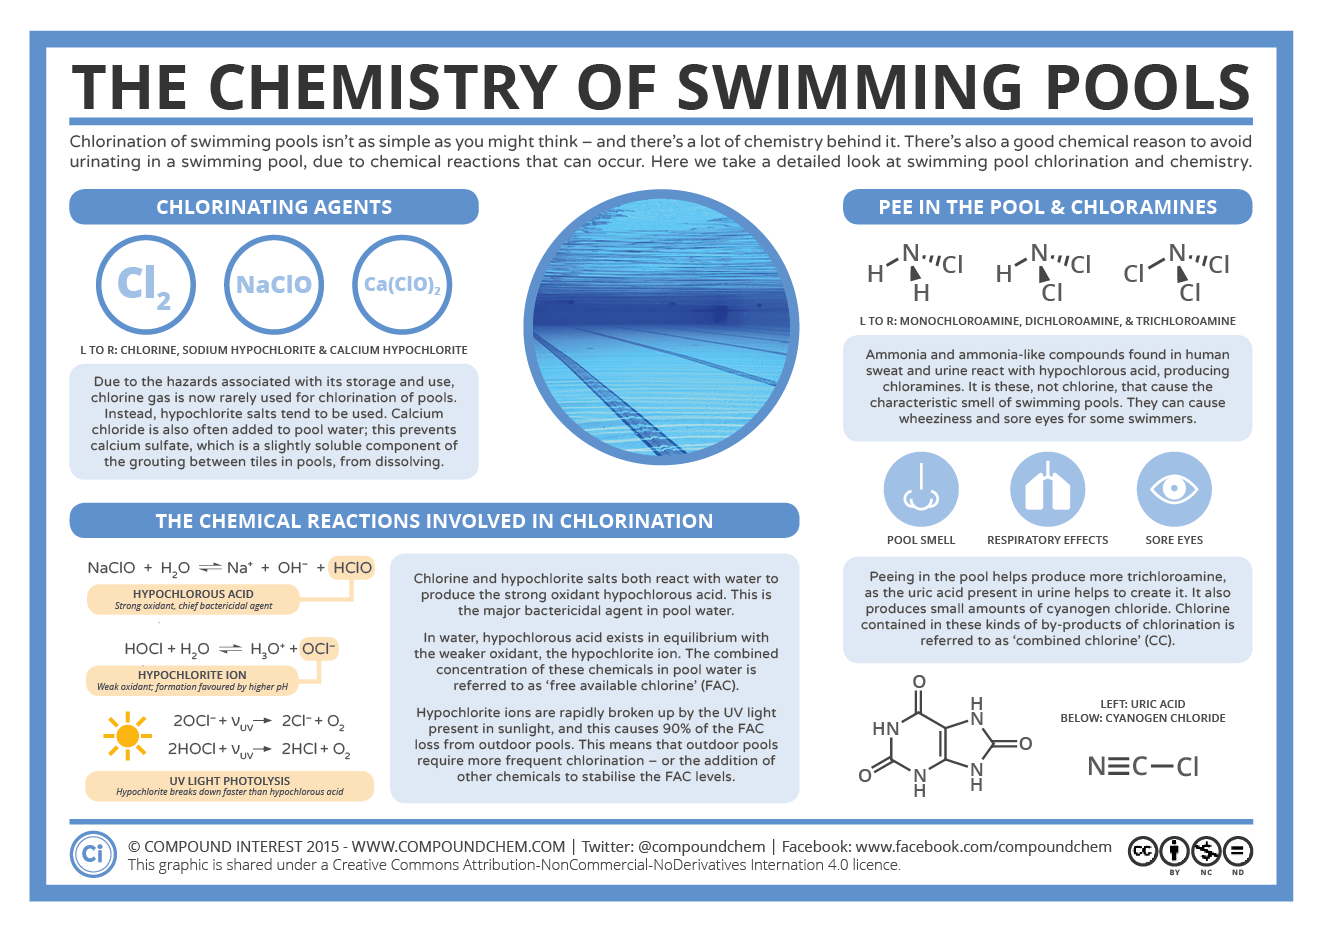 How chlorine keeps pools safe for summertime fun for Chemicals needed to close swimming pool